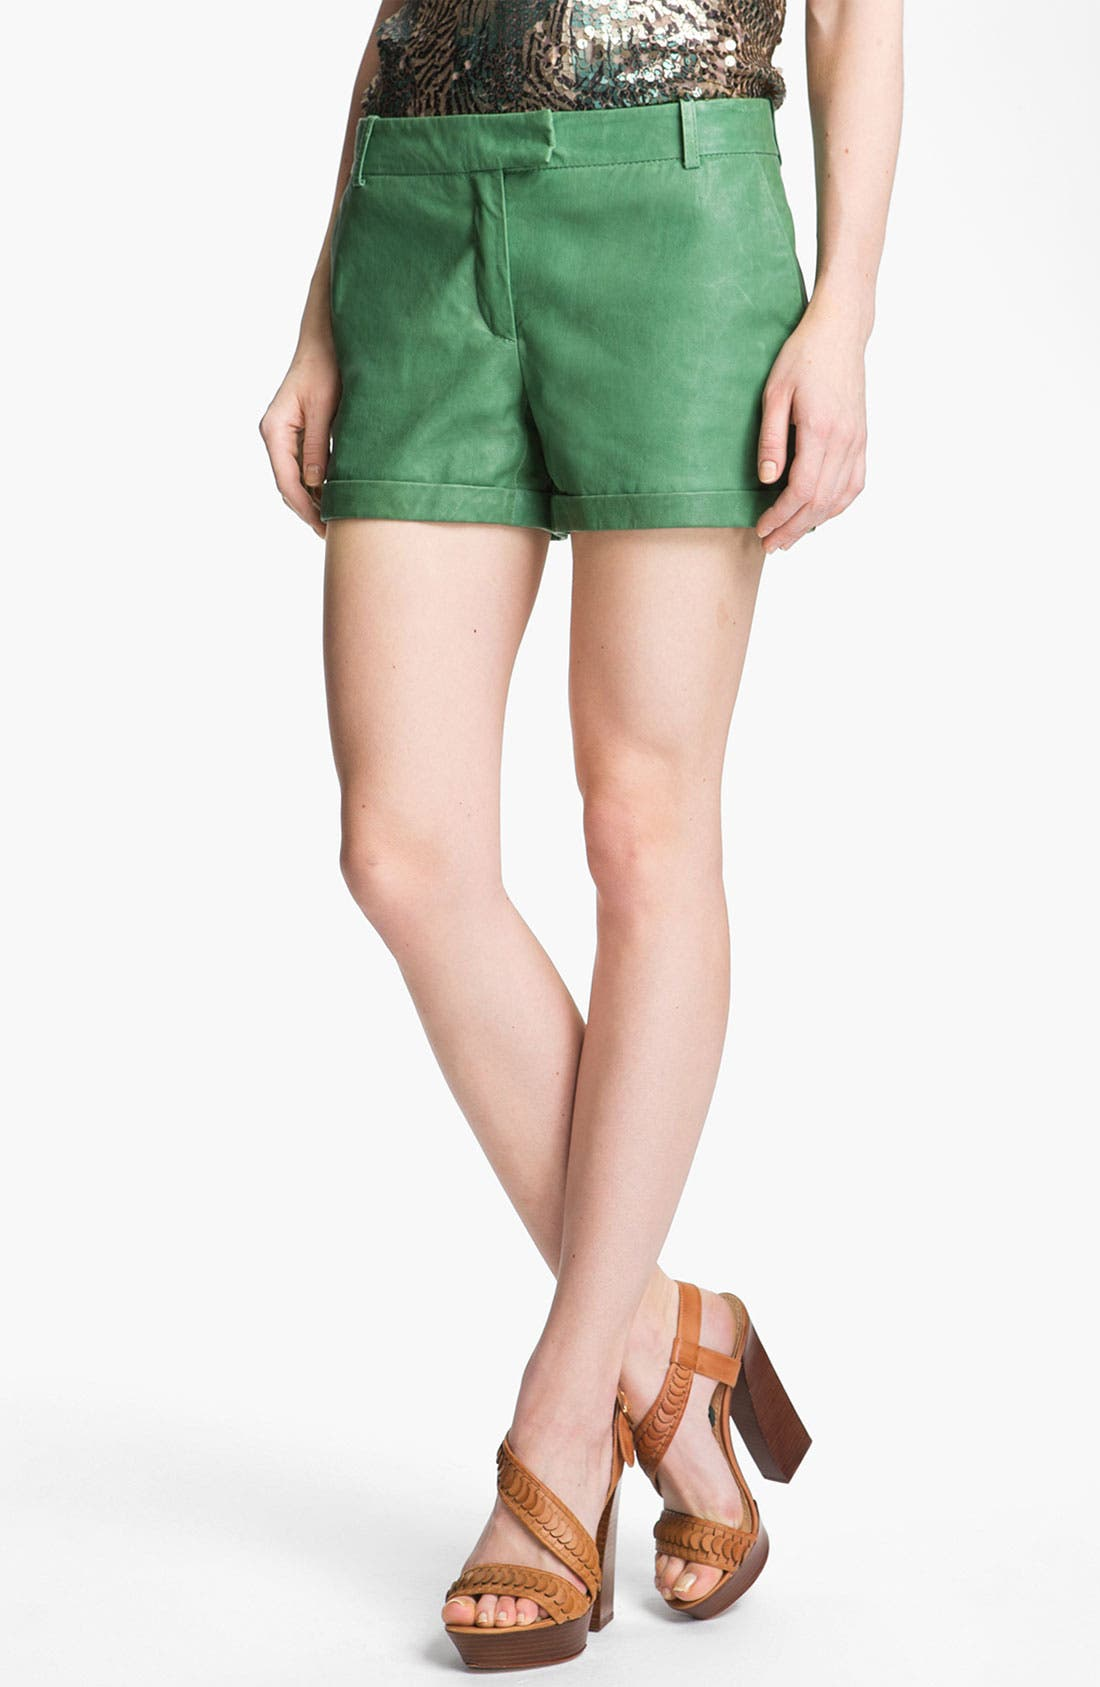 Alternate Image 1 Selected - Rachel Zoe 'Justin' Leather Shorts